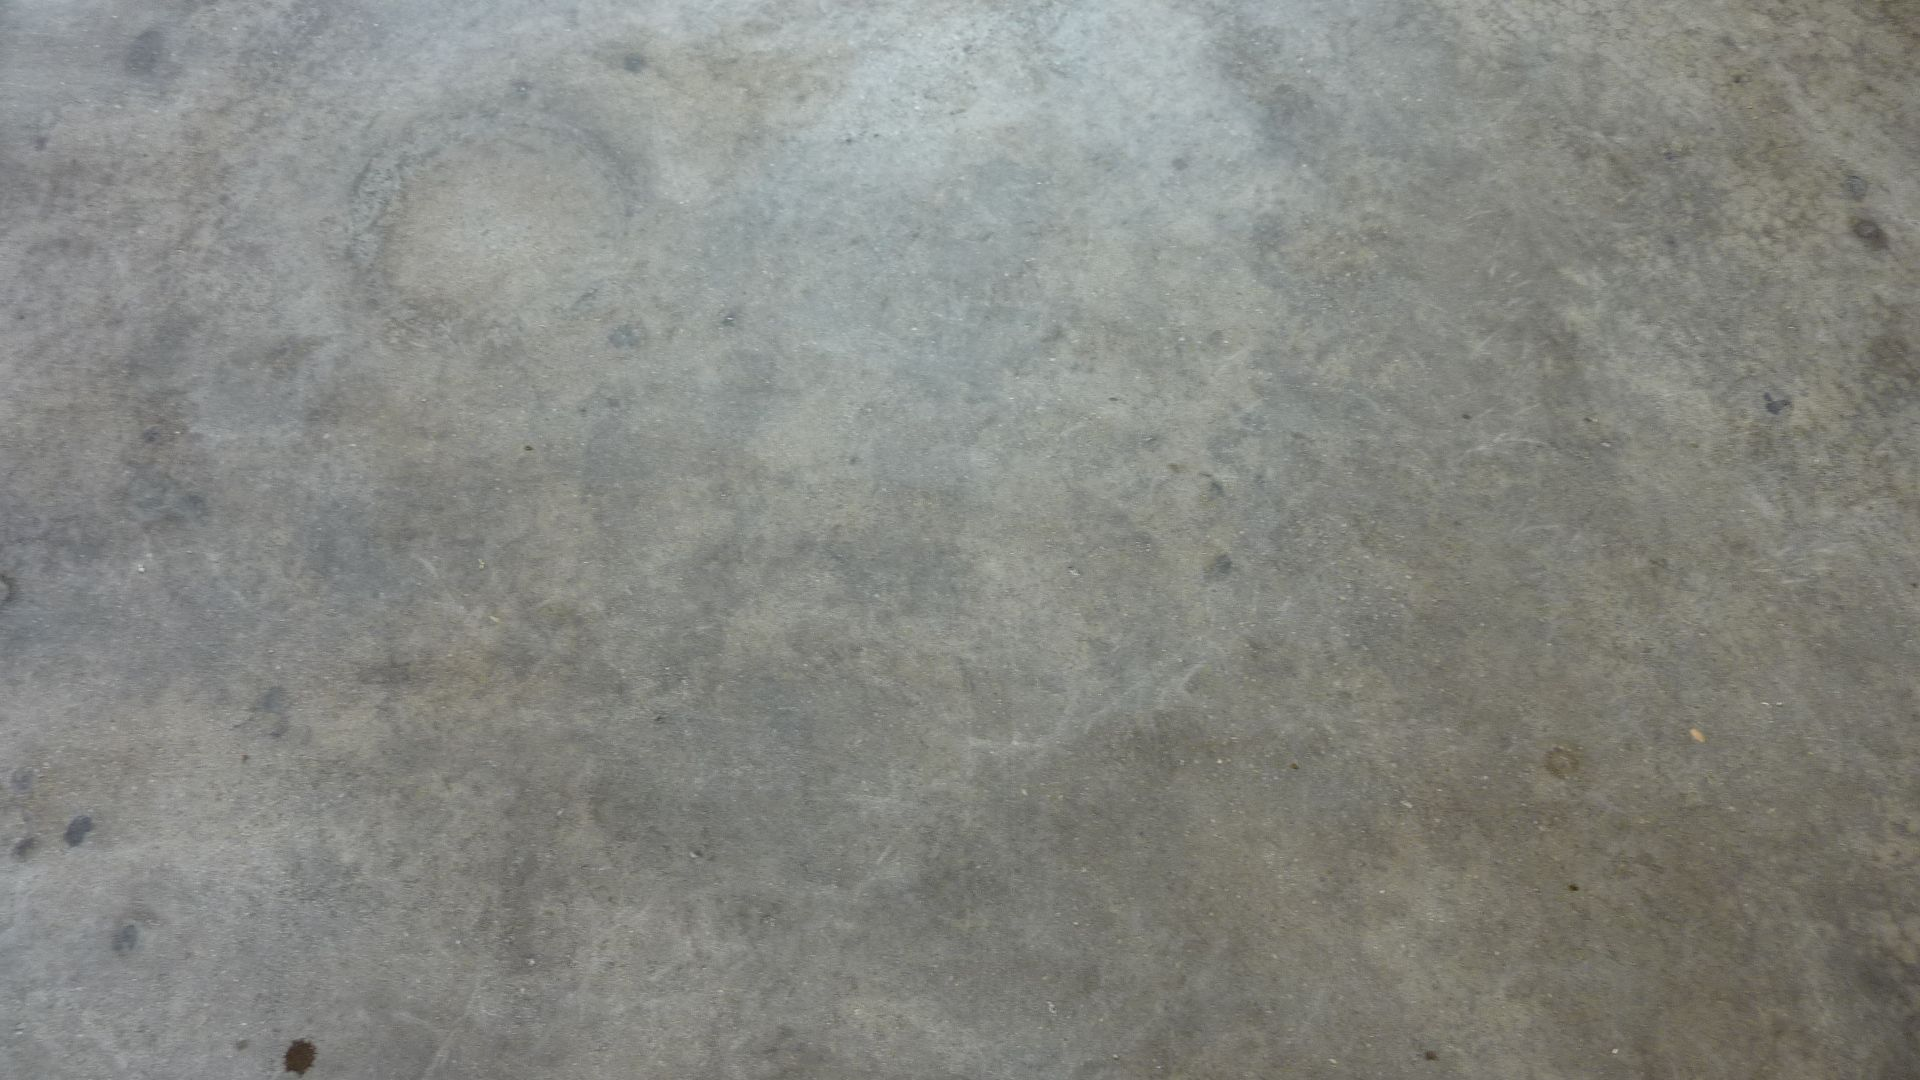 Smooth Cement Floor Texture | www.pixshark.com - Images ...